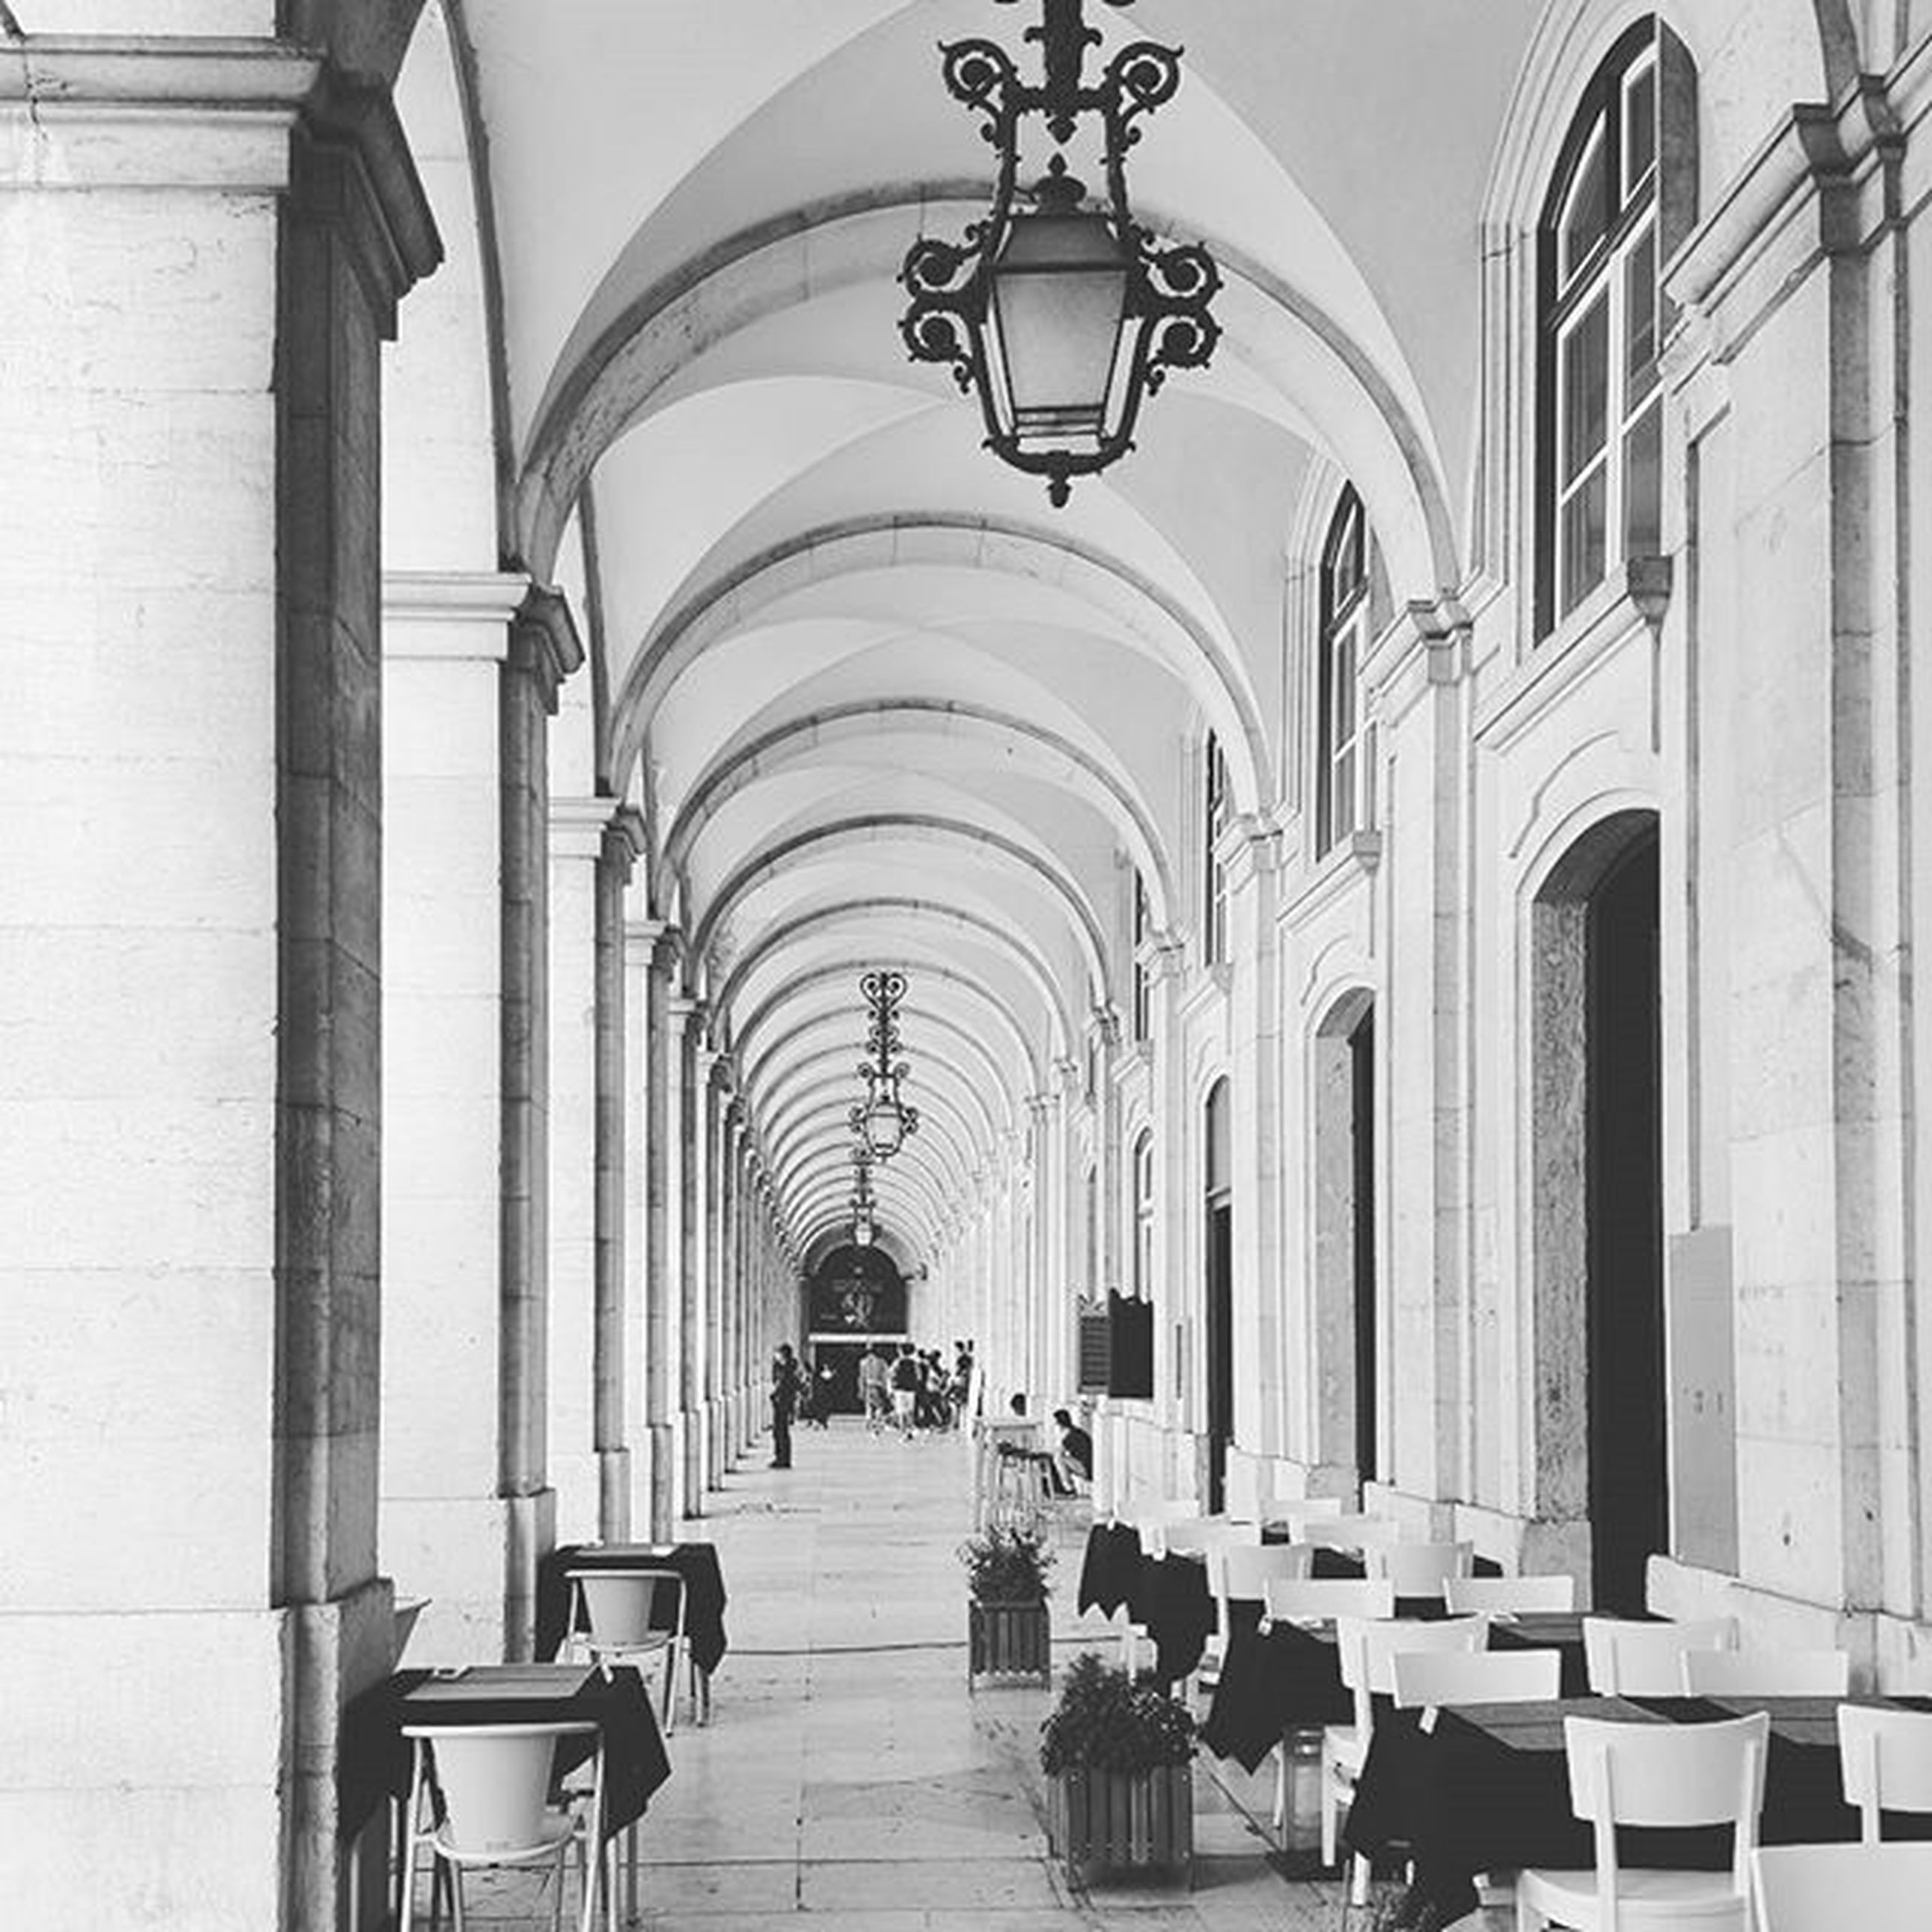 indoors, arch, architecture, the way forward, built structure, corridor, ceiling, in a row, diminishing perspective, place of worship, architectural column, religion, incidental people, colonnade, empty, tiled floor, person, flooring, archway, travel destinations